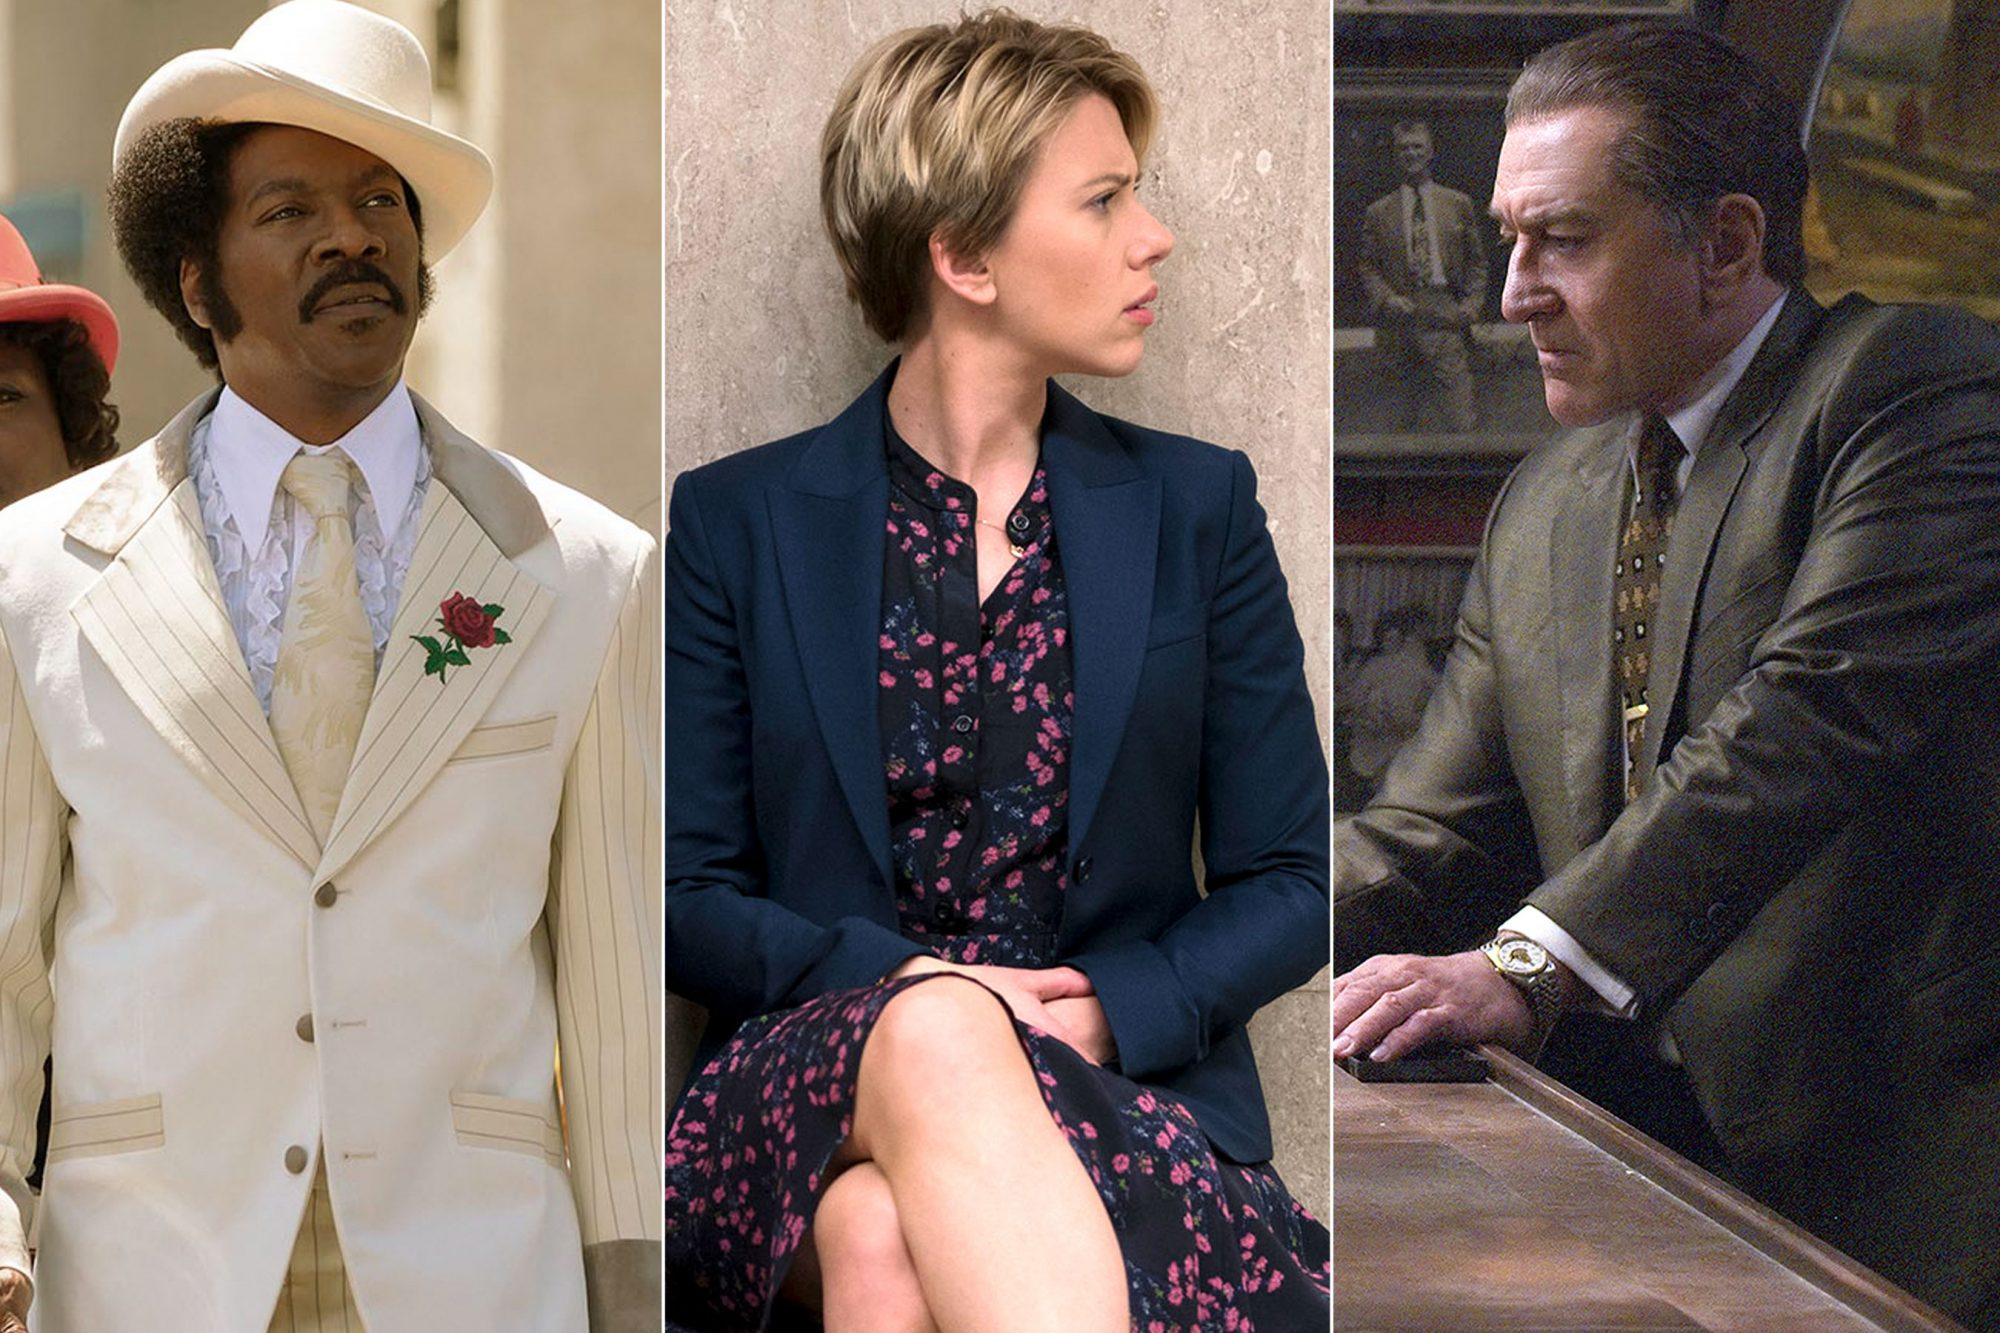 Eddie Murphy in Dolemite Scarlett Johansson in Marriage Story Robert De Niro in The Irishman